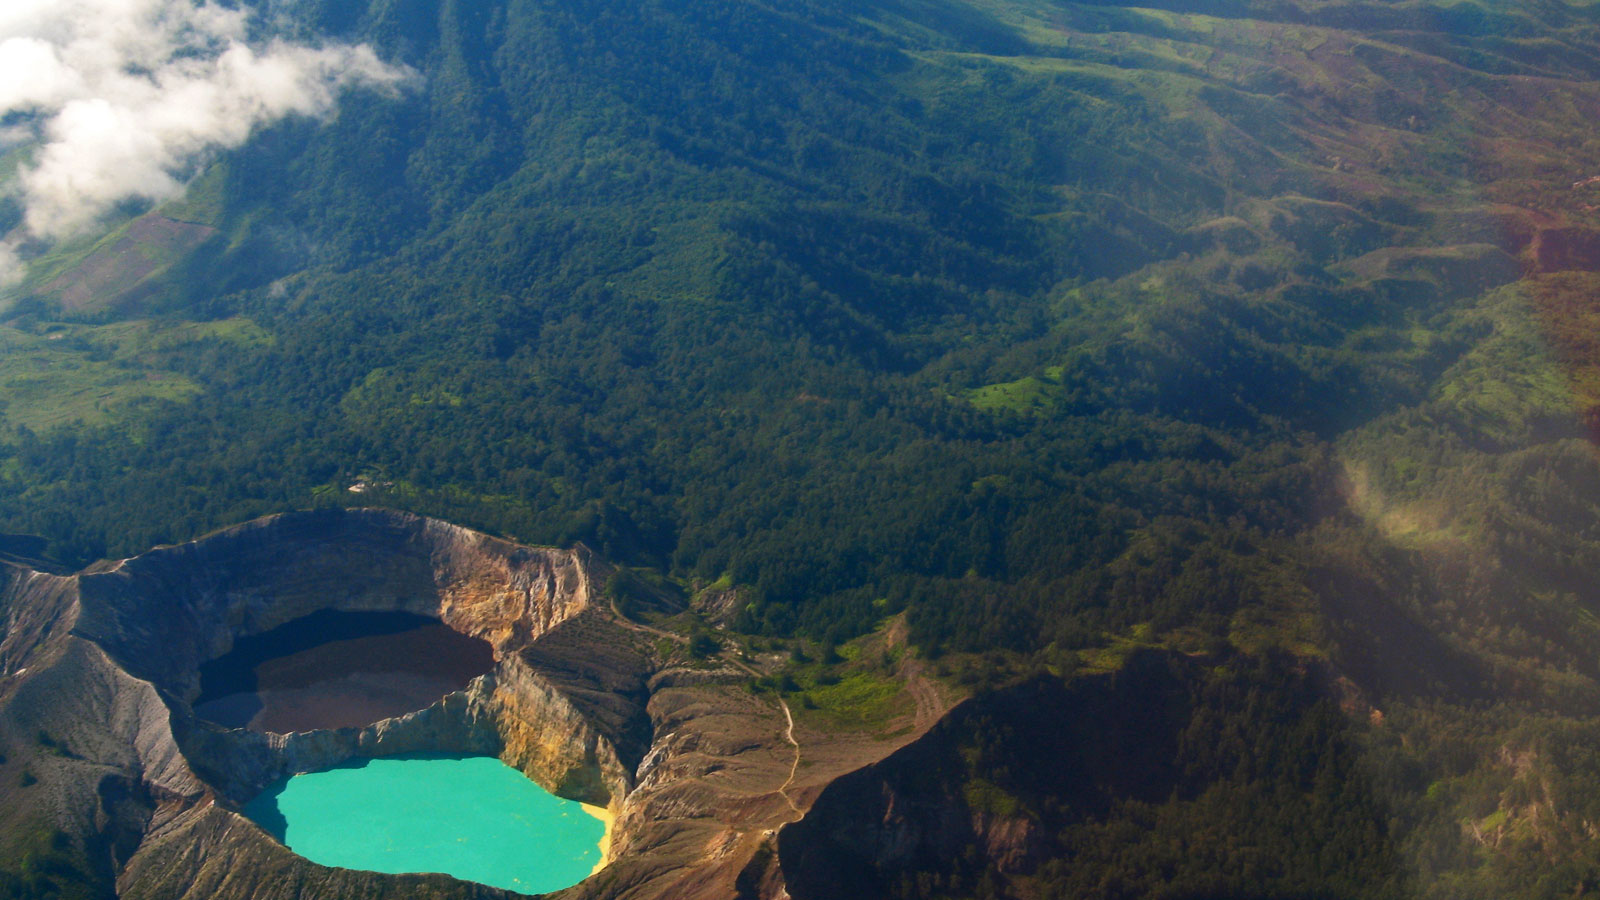 Gunung Kelimutu auf Flores in Indonesien traveljunkies